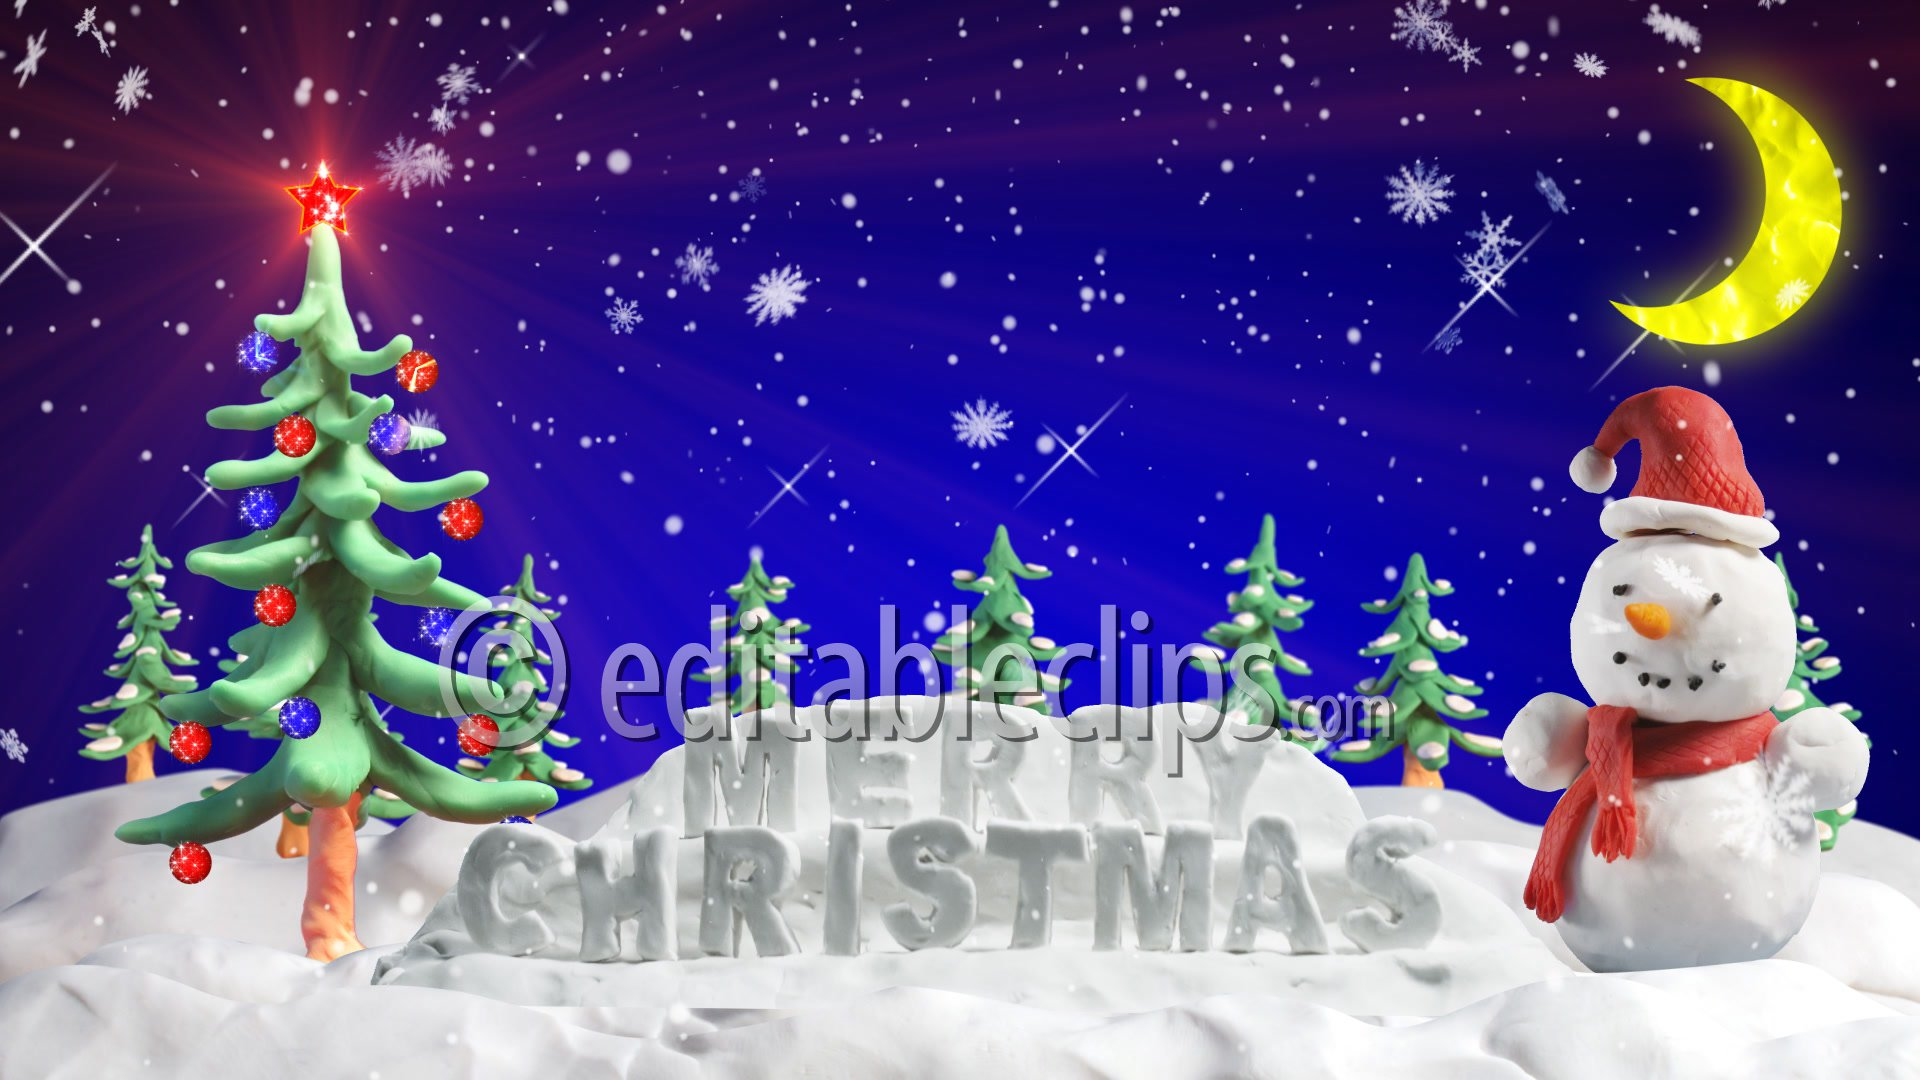 Merry Christmas Clay Greetings Hd 1080 Editable Clips